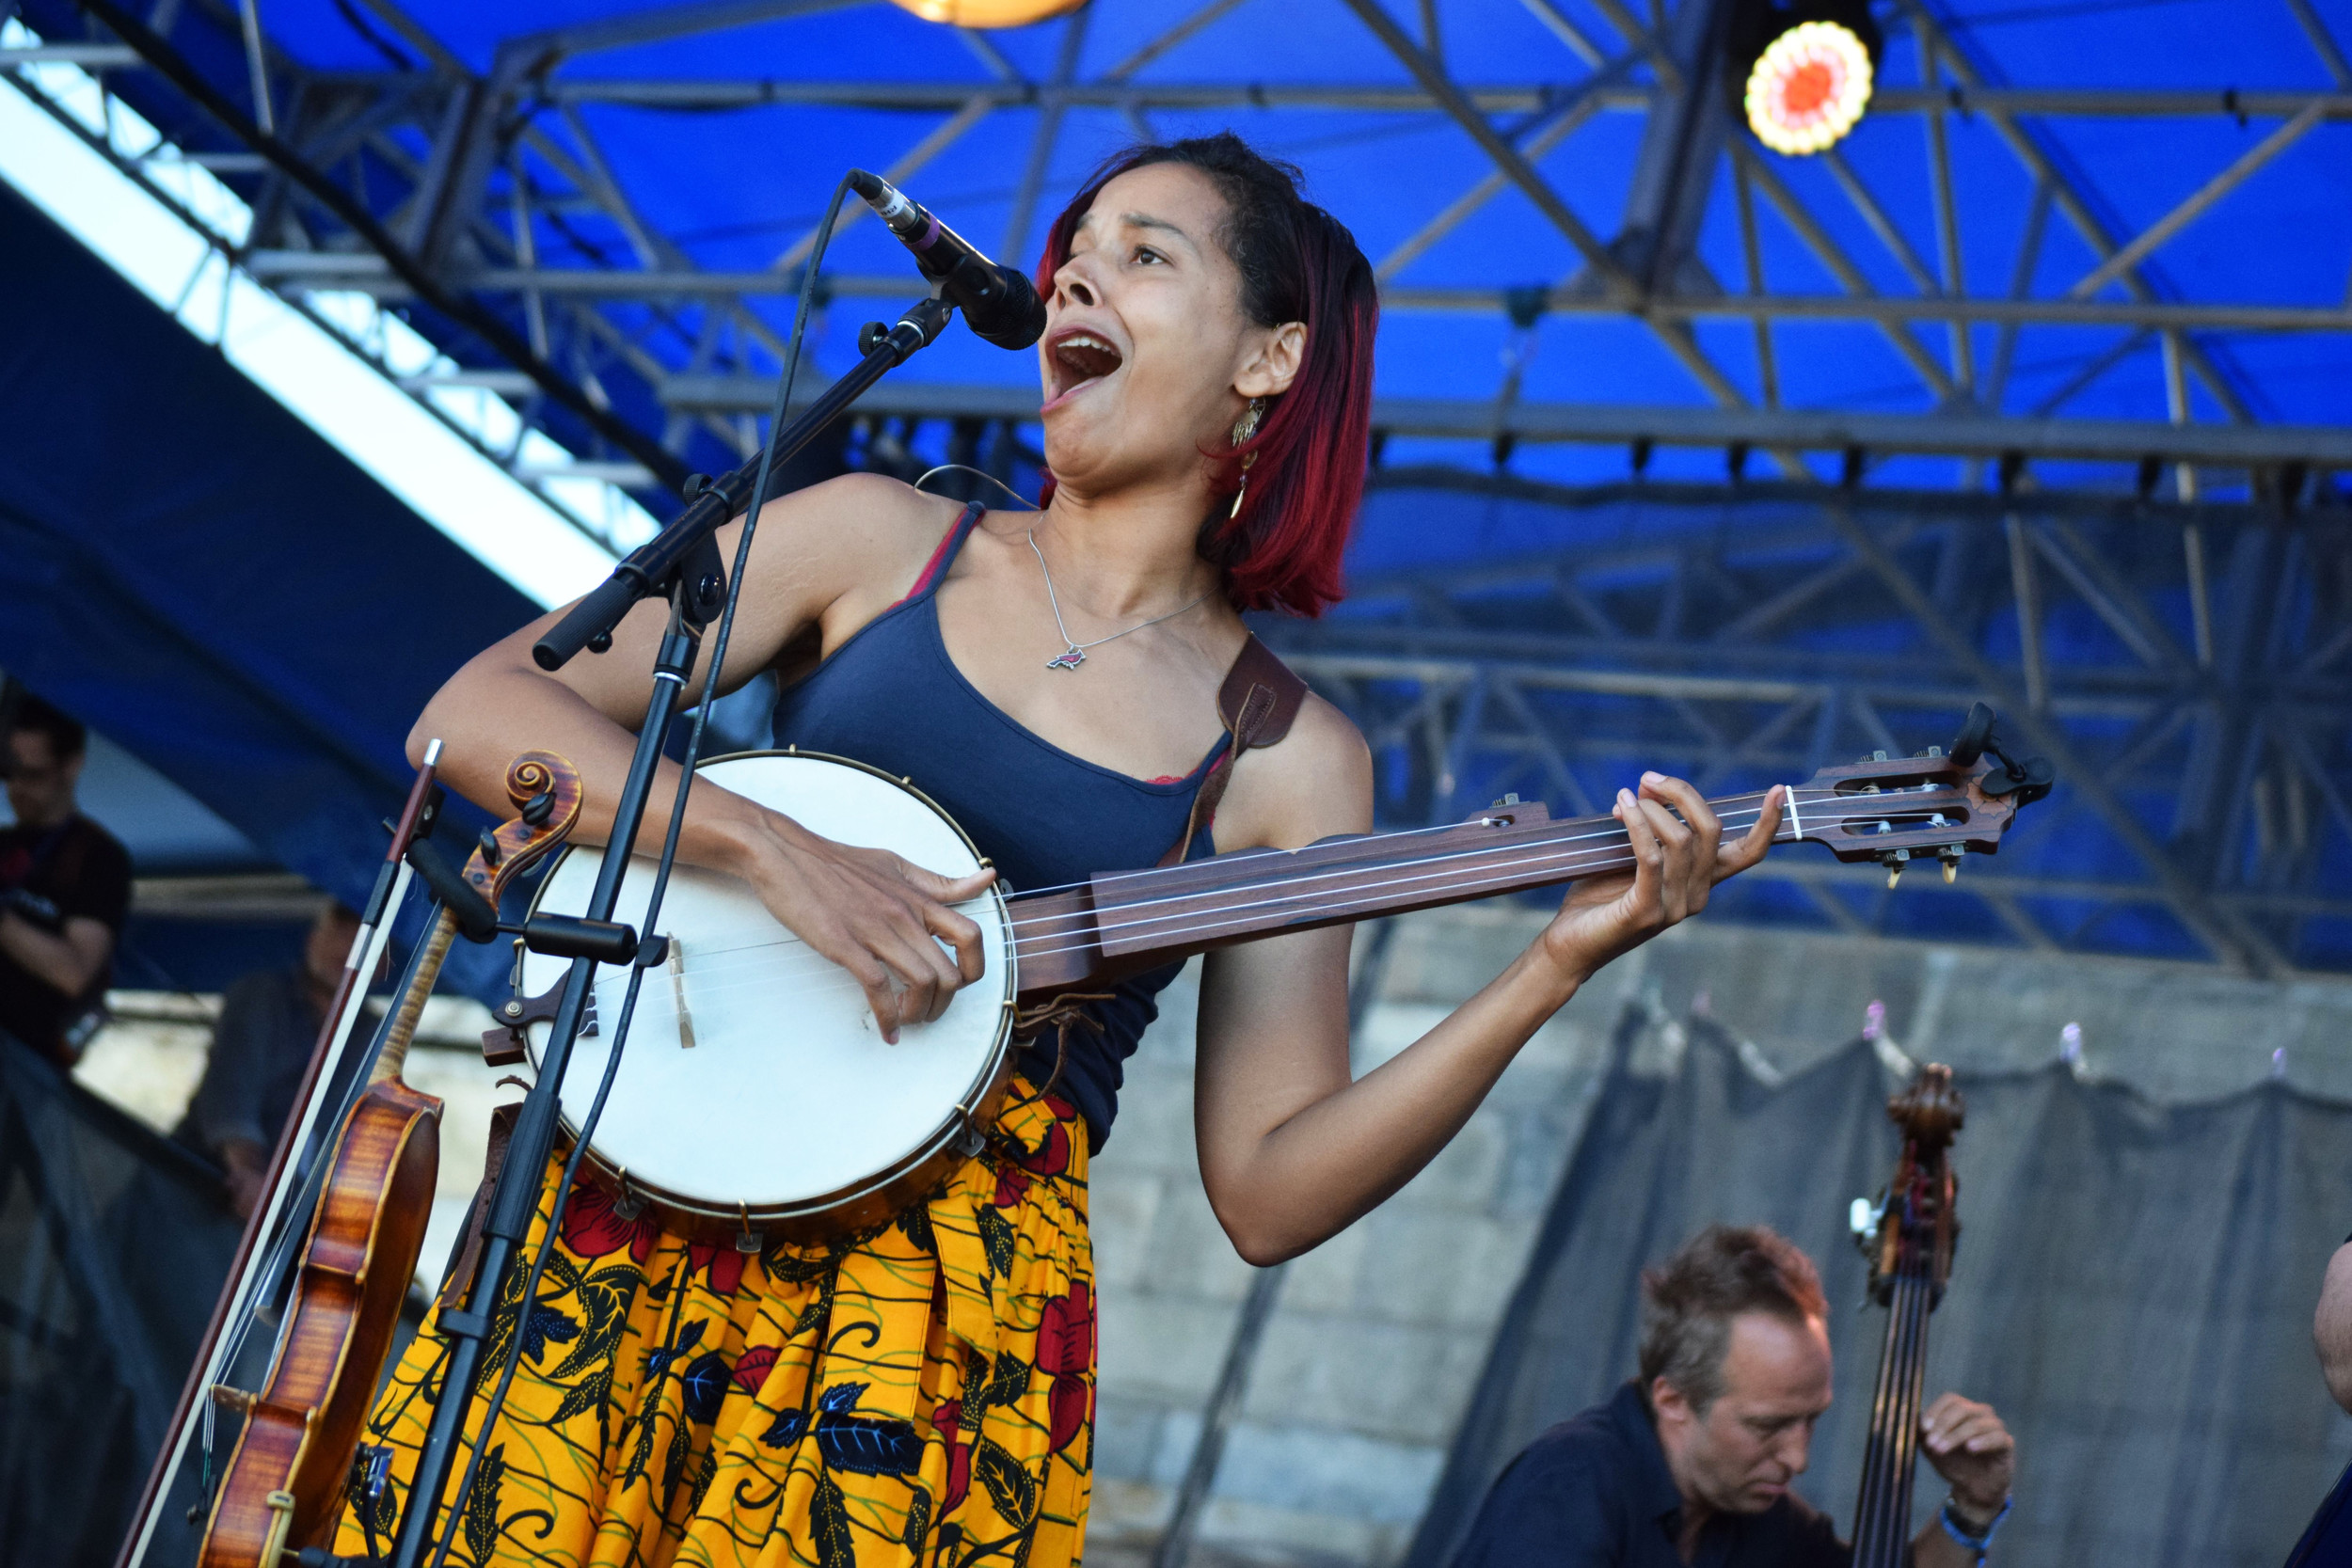 Singer, violinist, banjo player Rhiannon Giddens performs Sunday, on the main stage of the Newport Folk Festival. She is also scheduled to headline the Newport Jazz Festival.